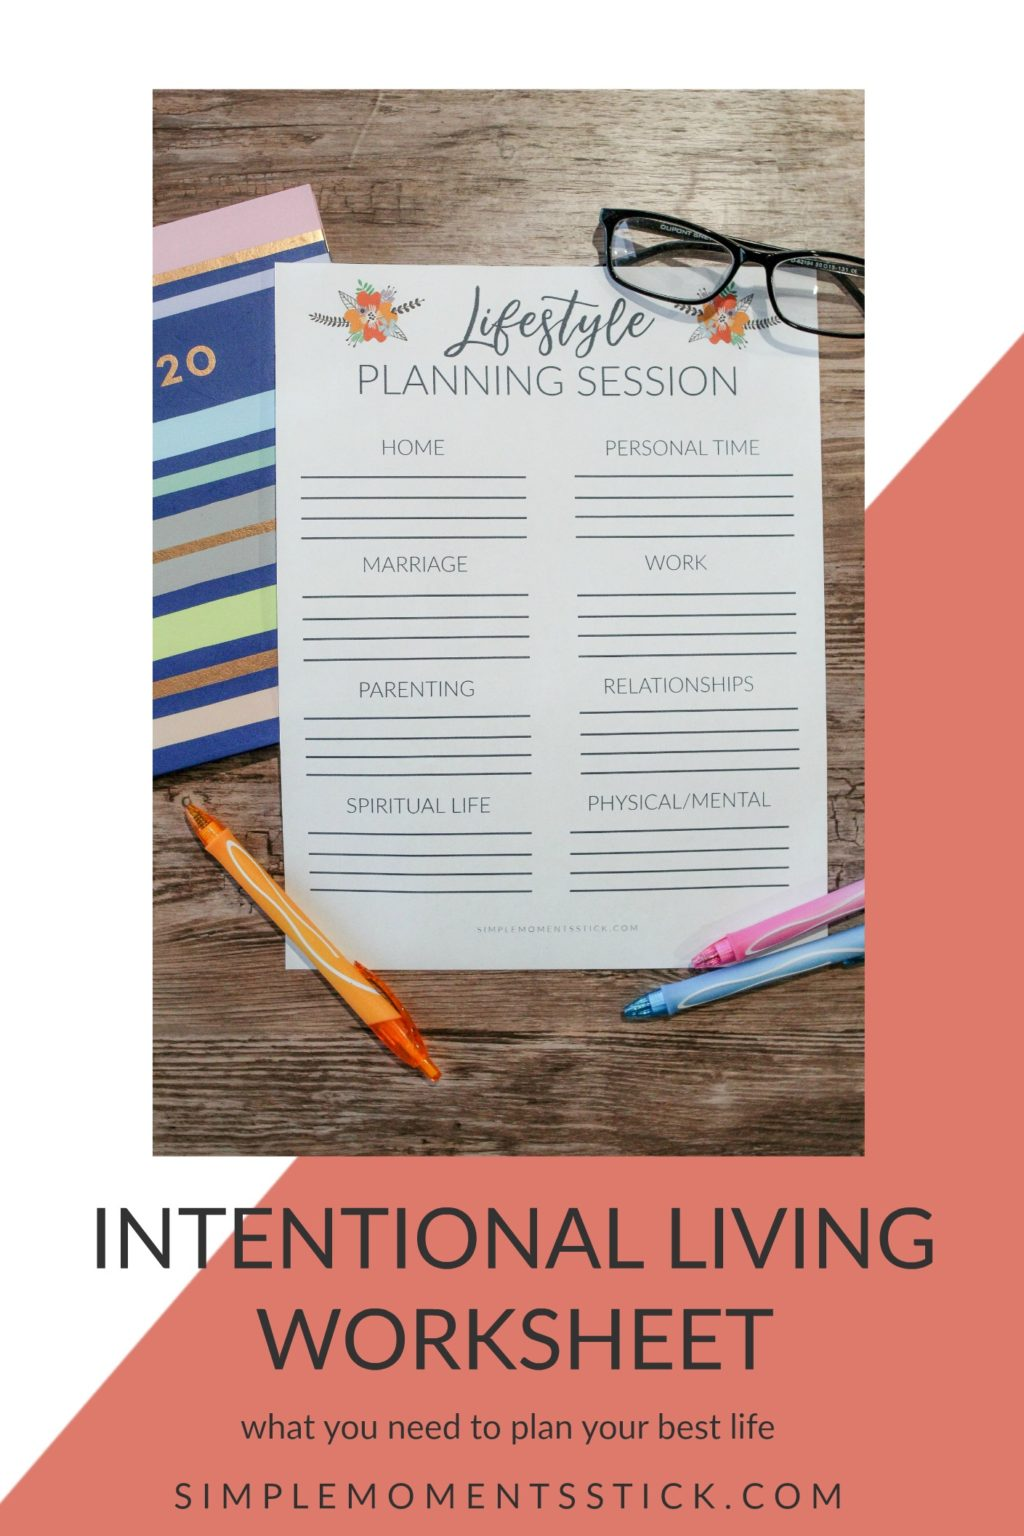 Intentional Lifestyle Changes. Creating an Intentional Life. Intentional Living Worksheet